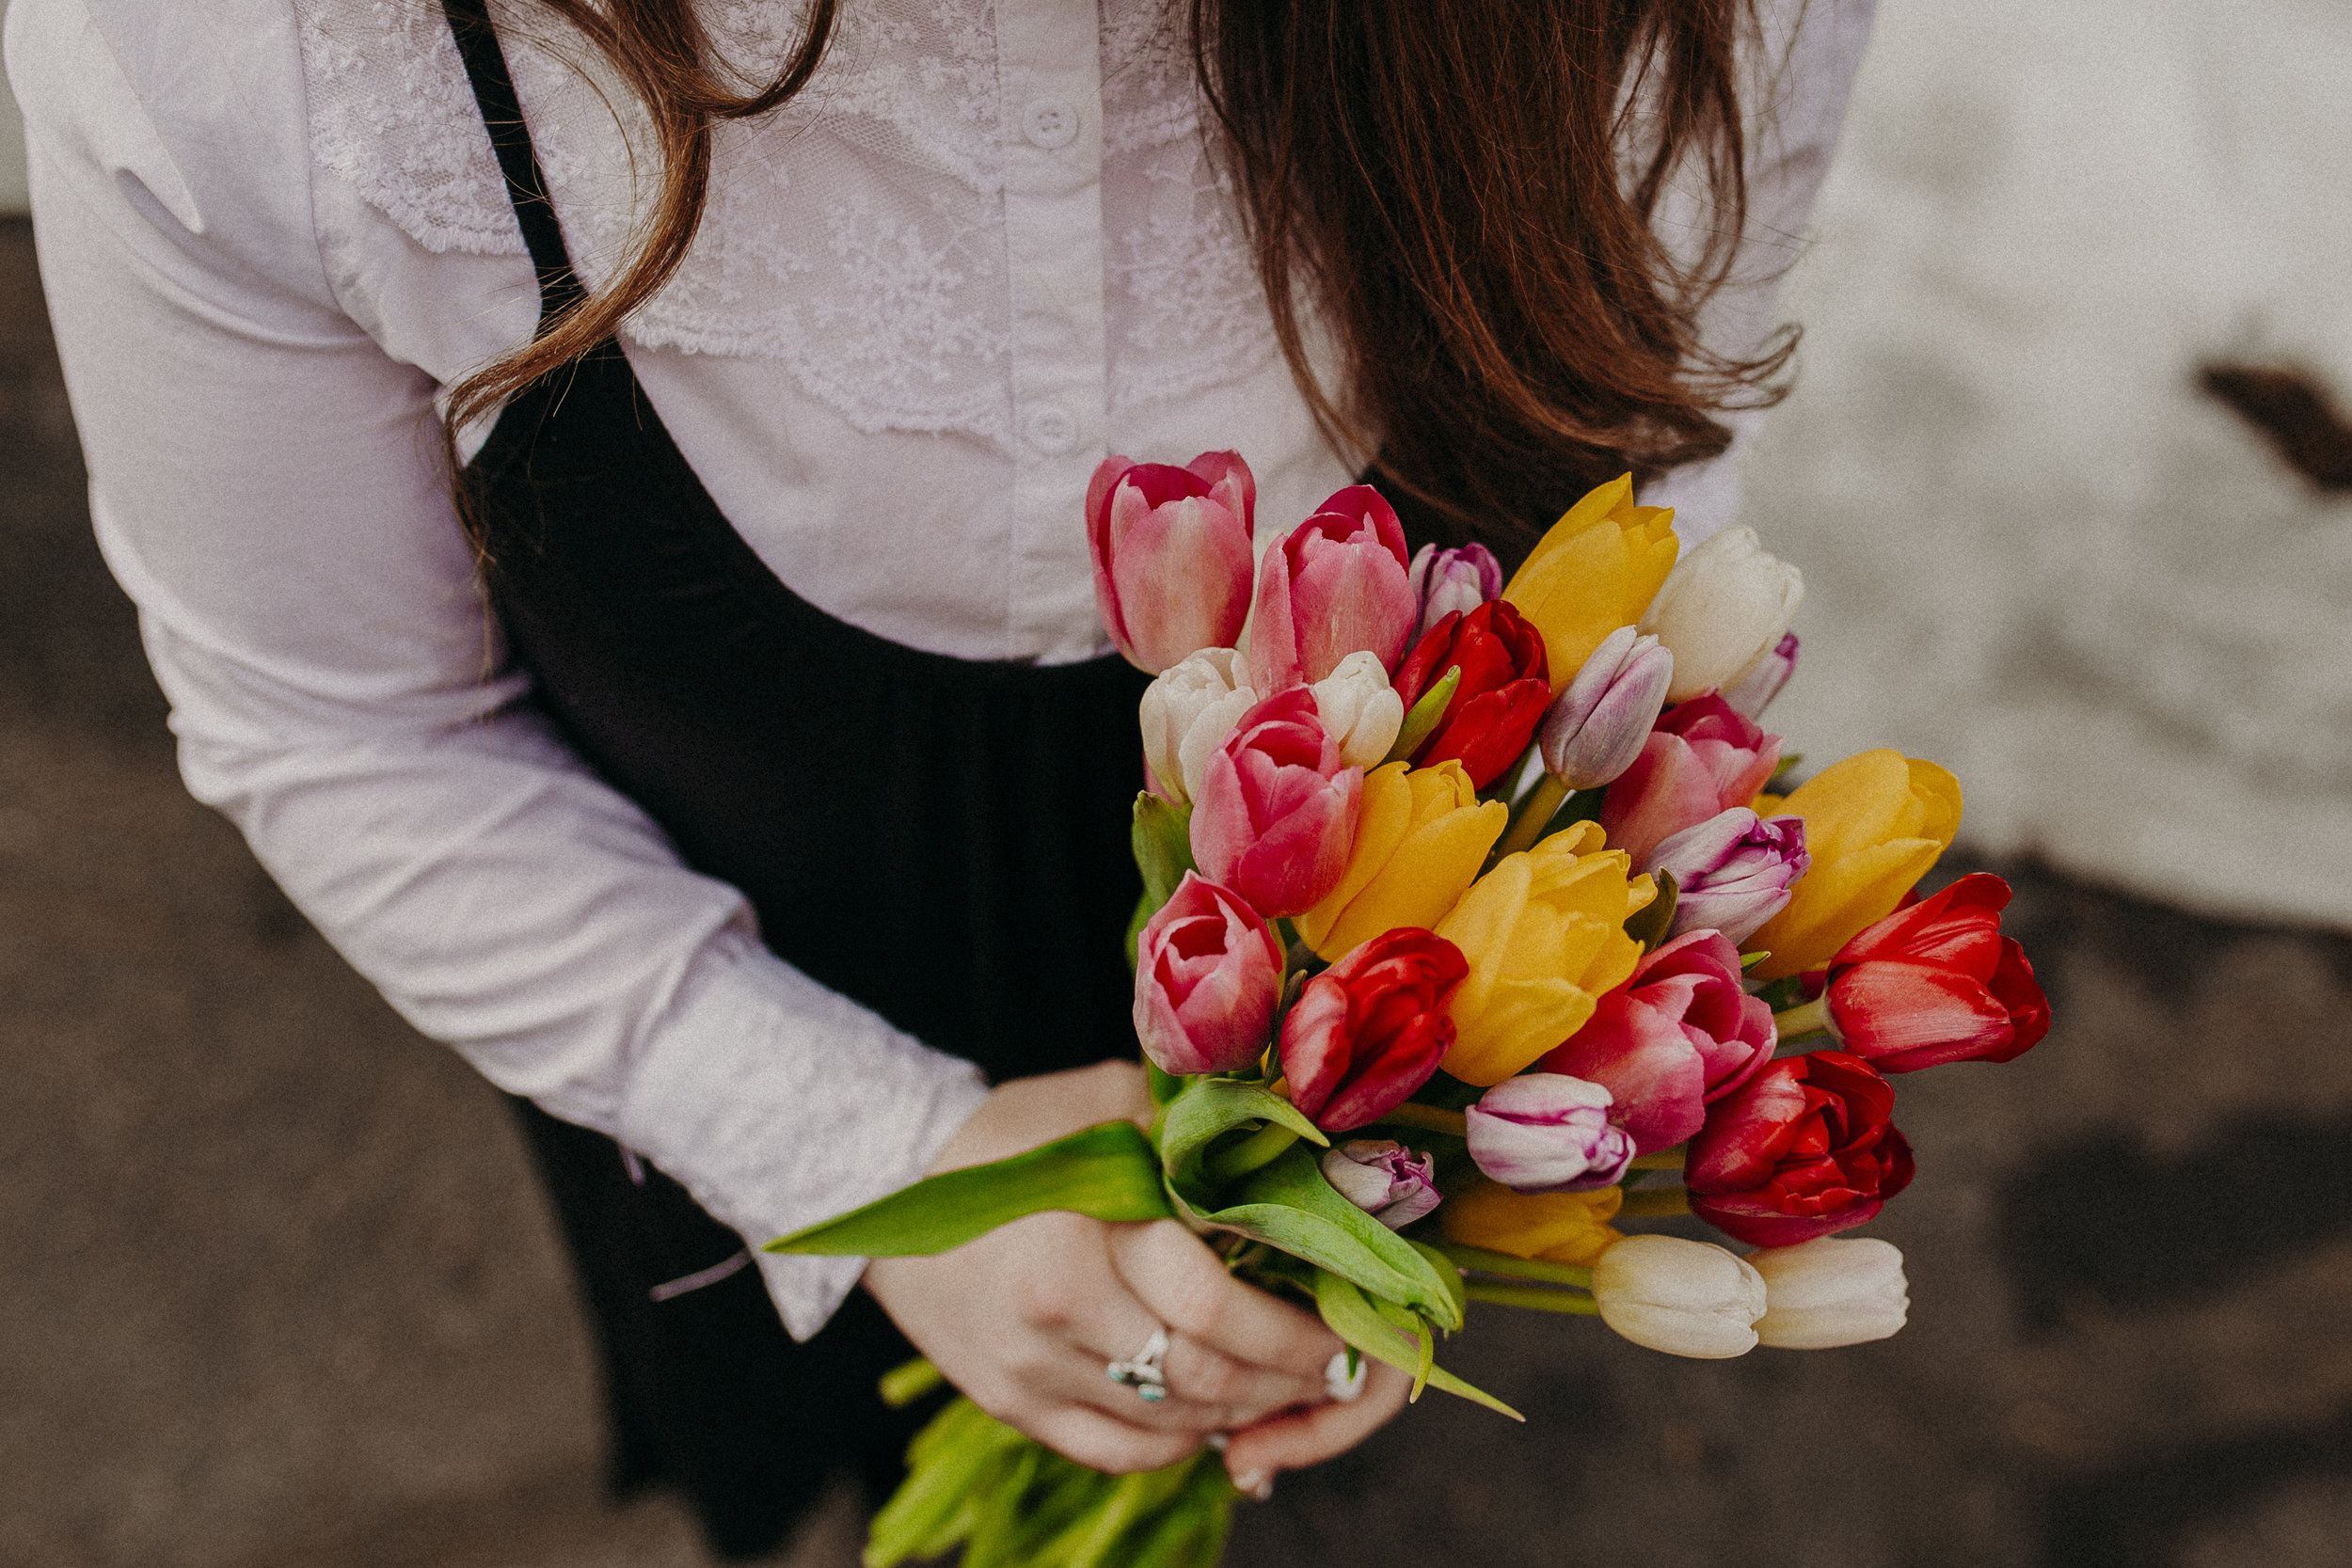 the-bouqs-flower-delivery-service-review-24.jpg